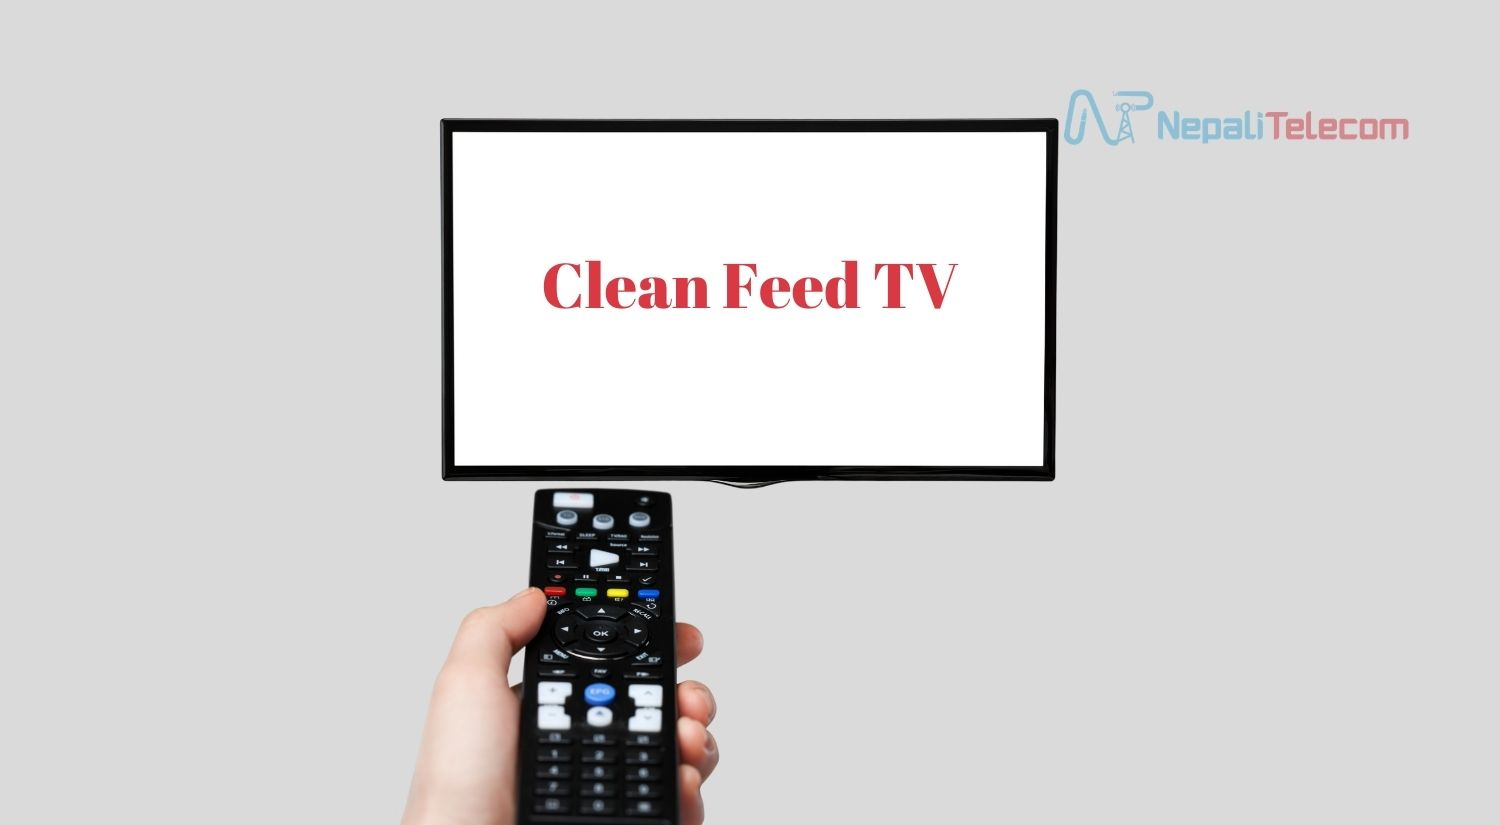 Clean Feed TV channel in Nepal